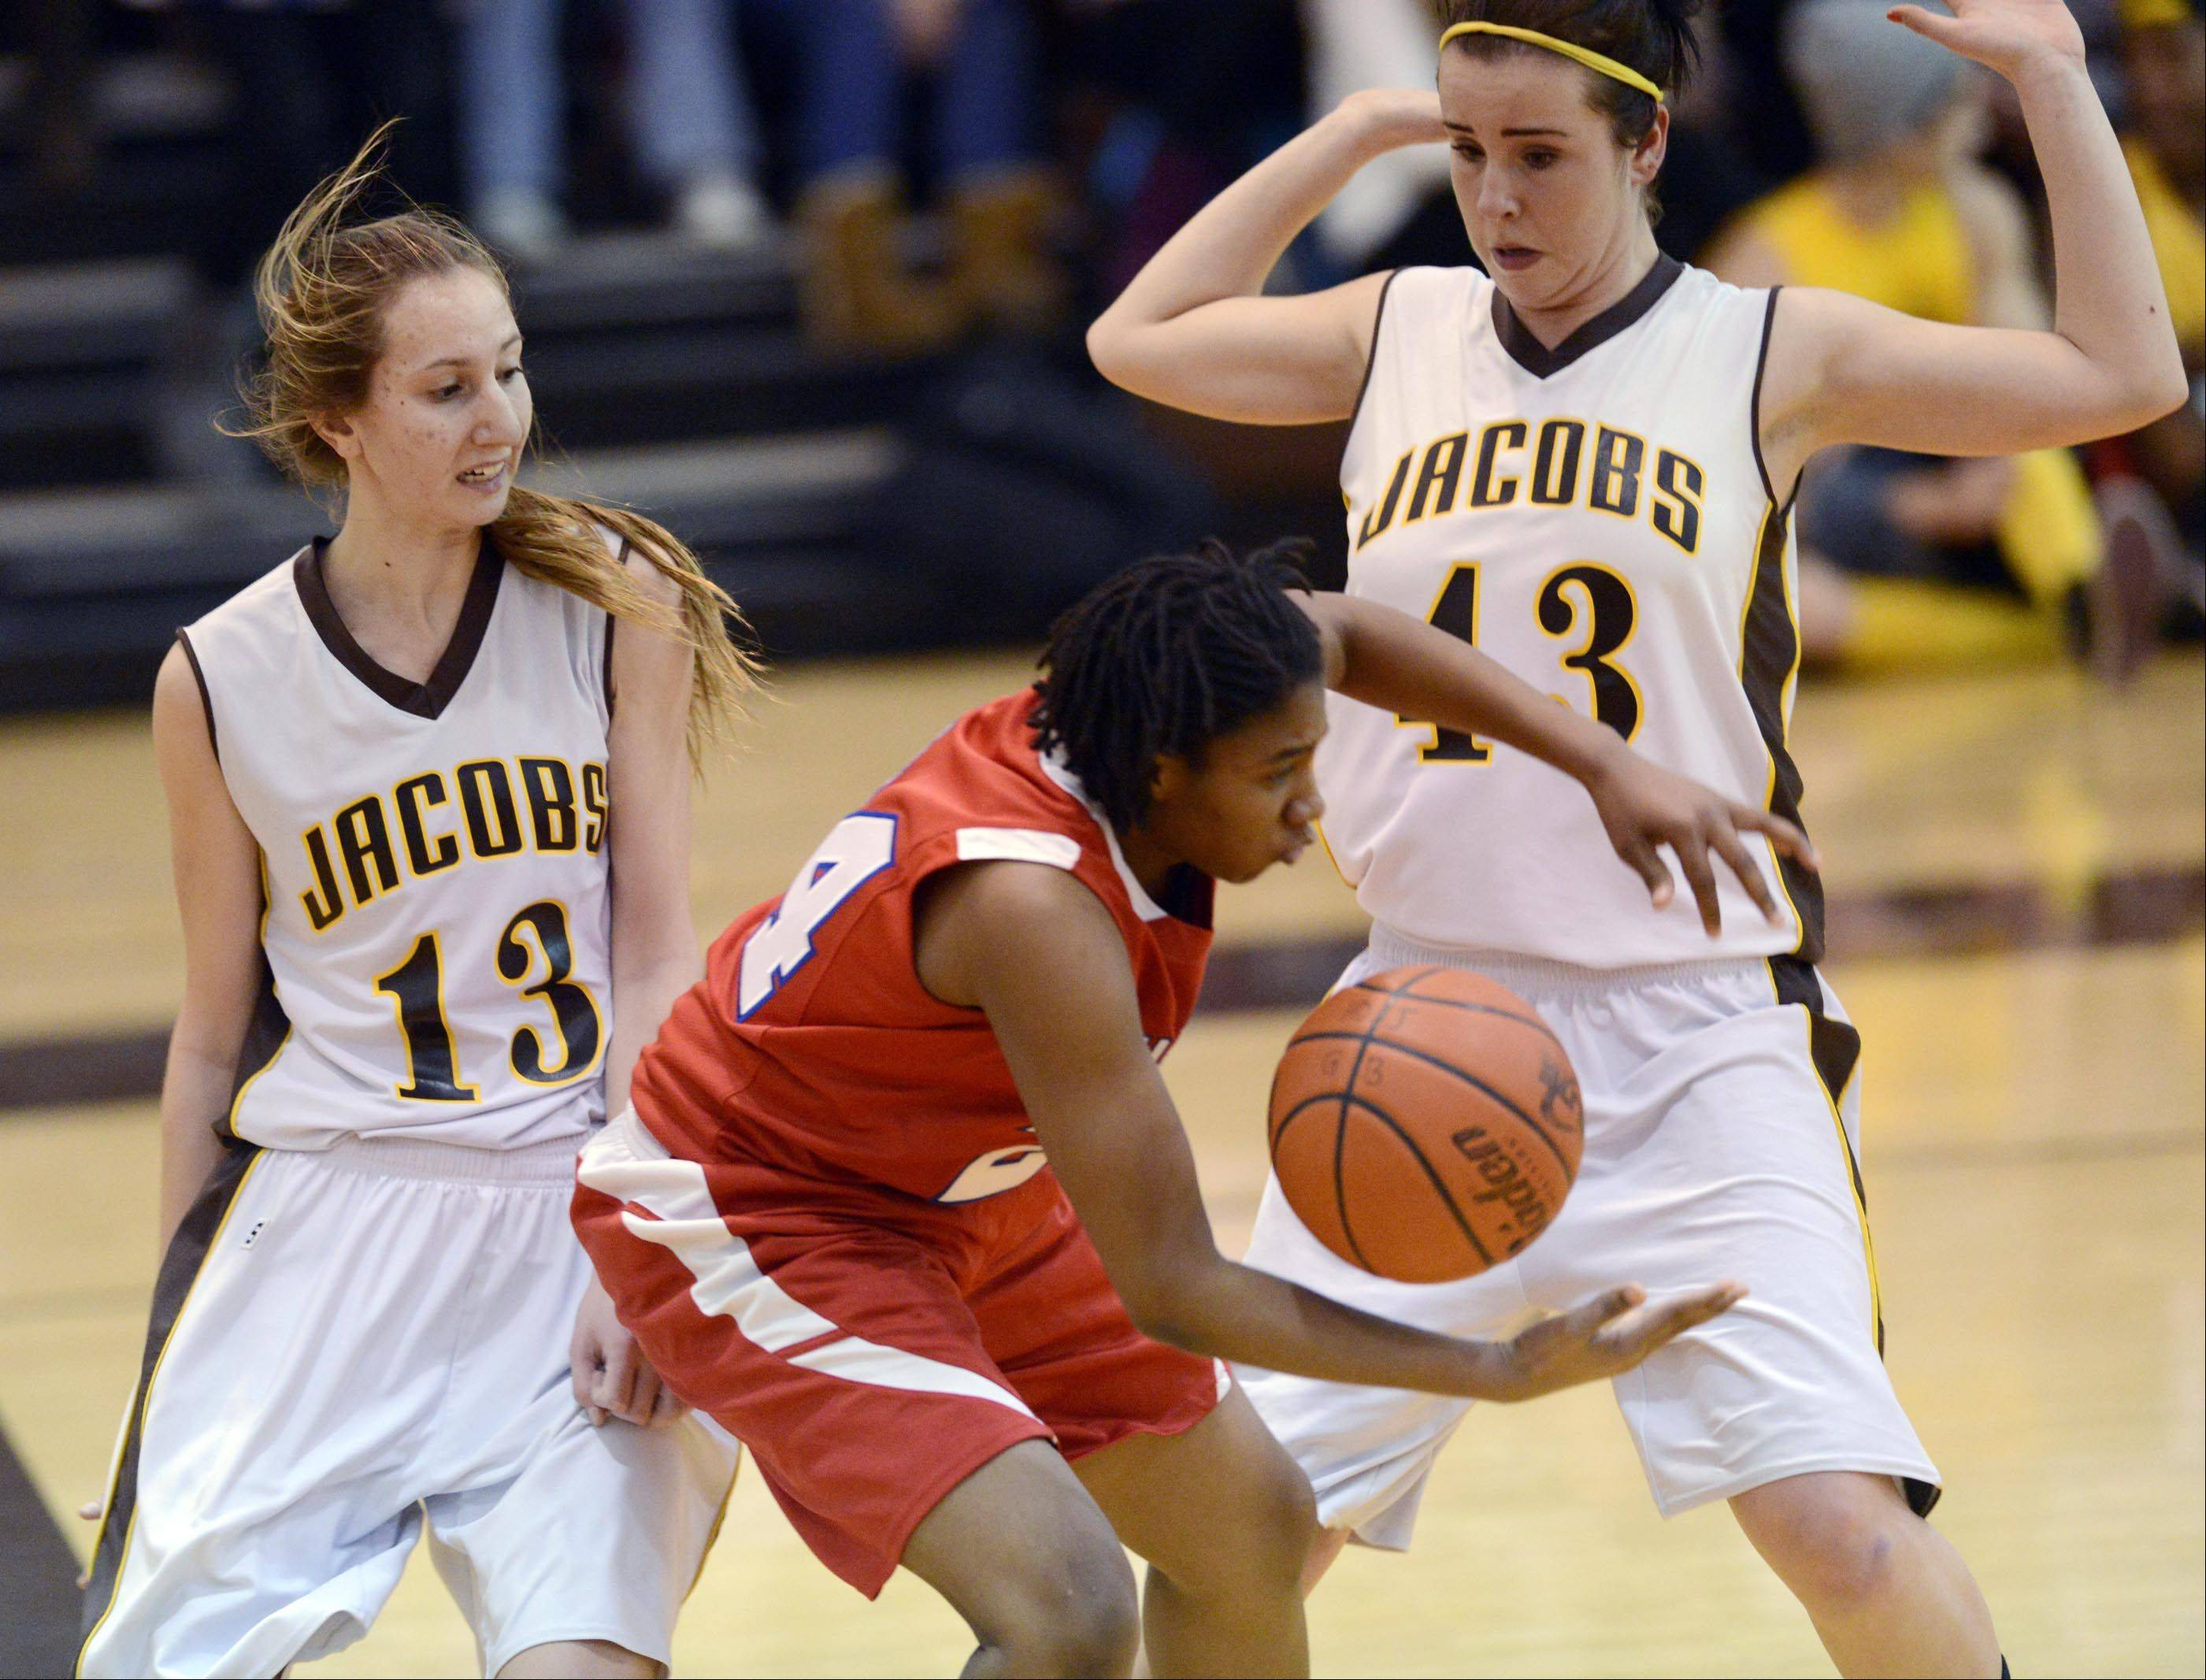 Dundee-Crown�s Jereneka Baker loses control of the ball under pressure from Jacobs� Victoria Tamburrino and Jackie Bartolai, right.